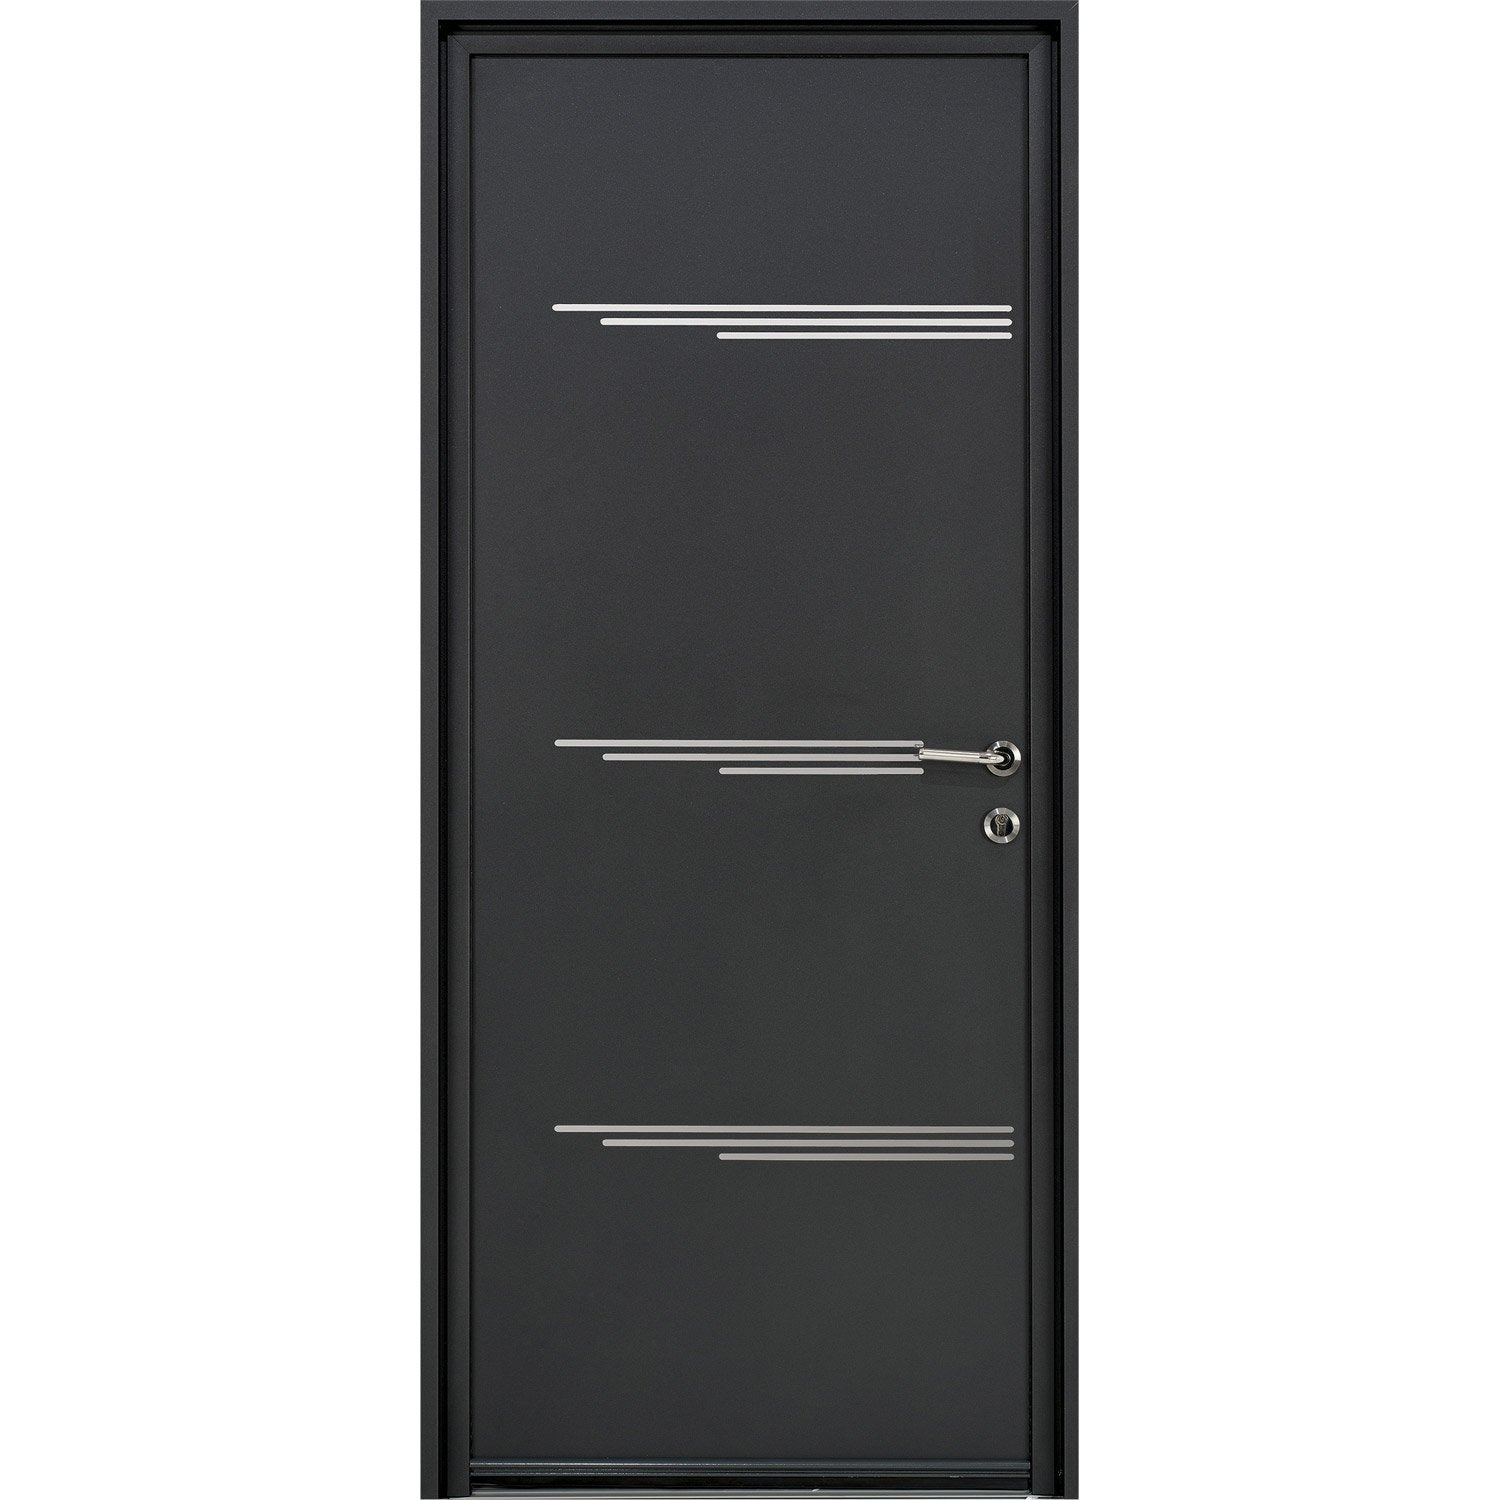 rideau porte d entr e castorama tringle rideau porte d entree castorama tringle de porte d. Black Bedroom Furniture Sets. Home Design Ideas